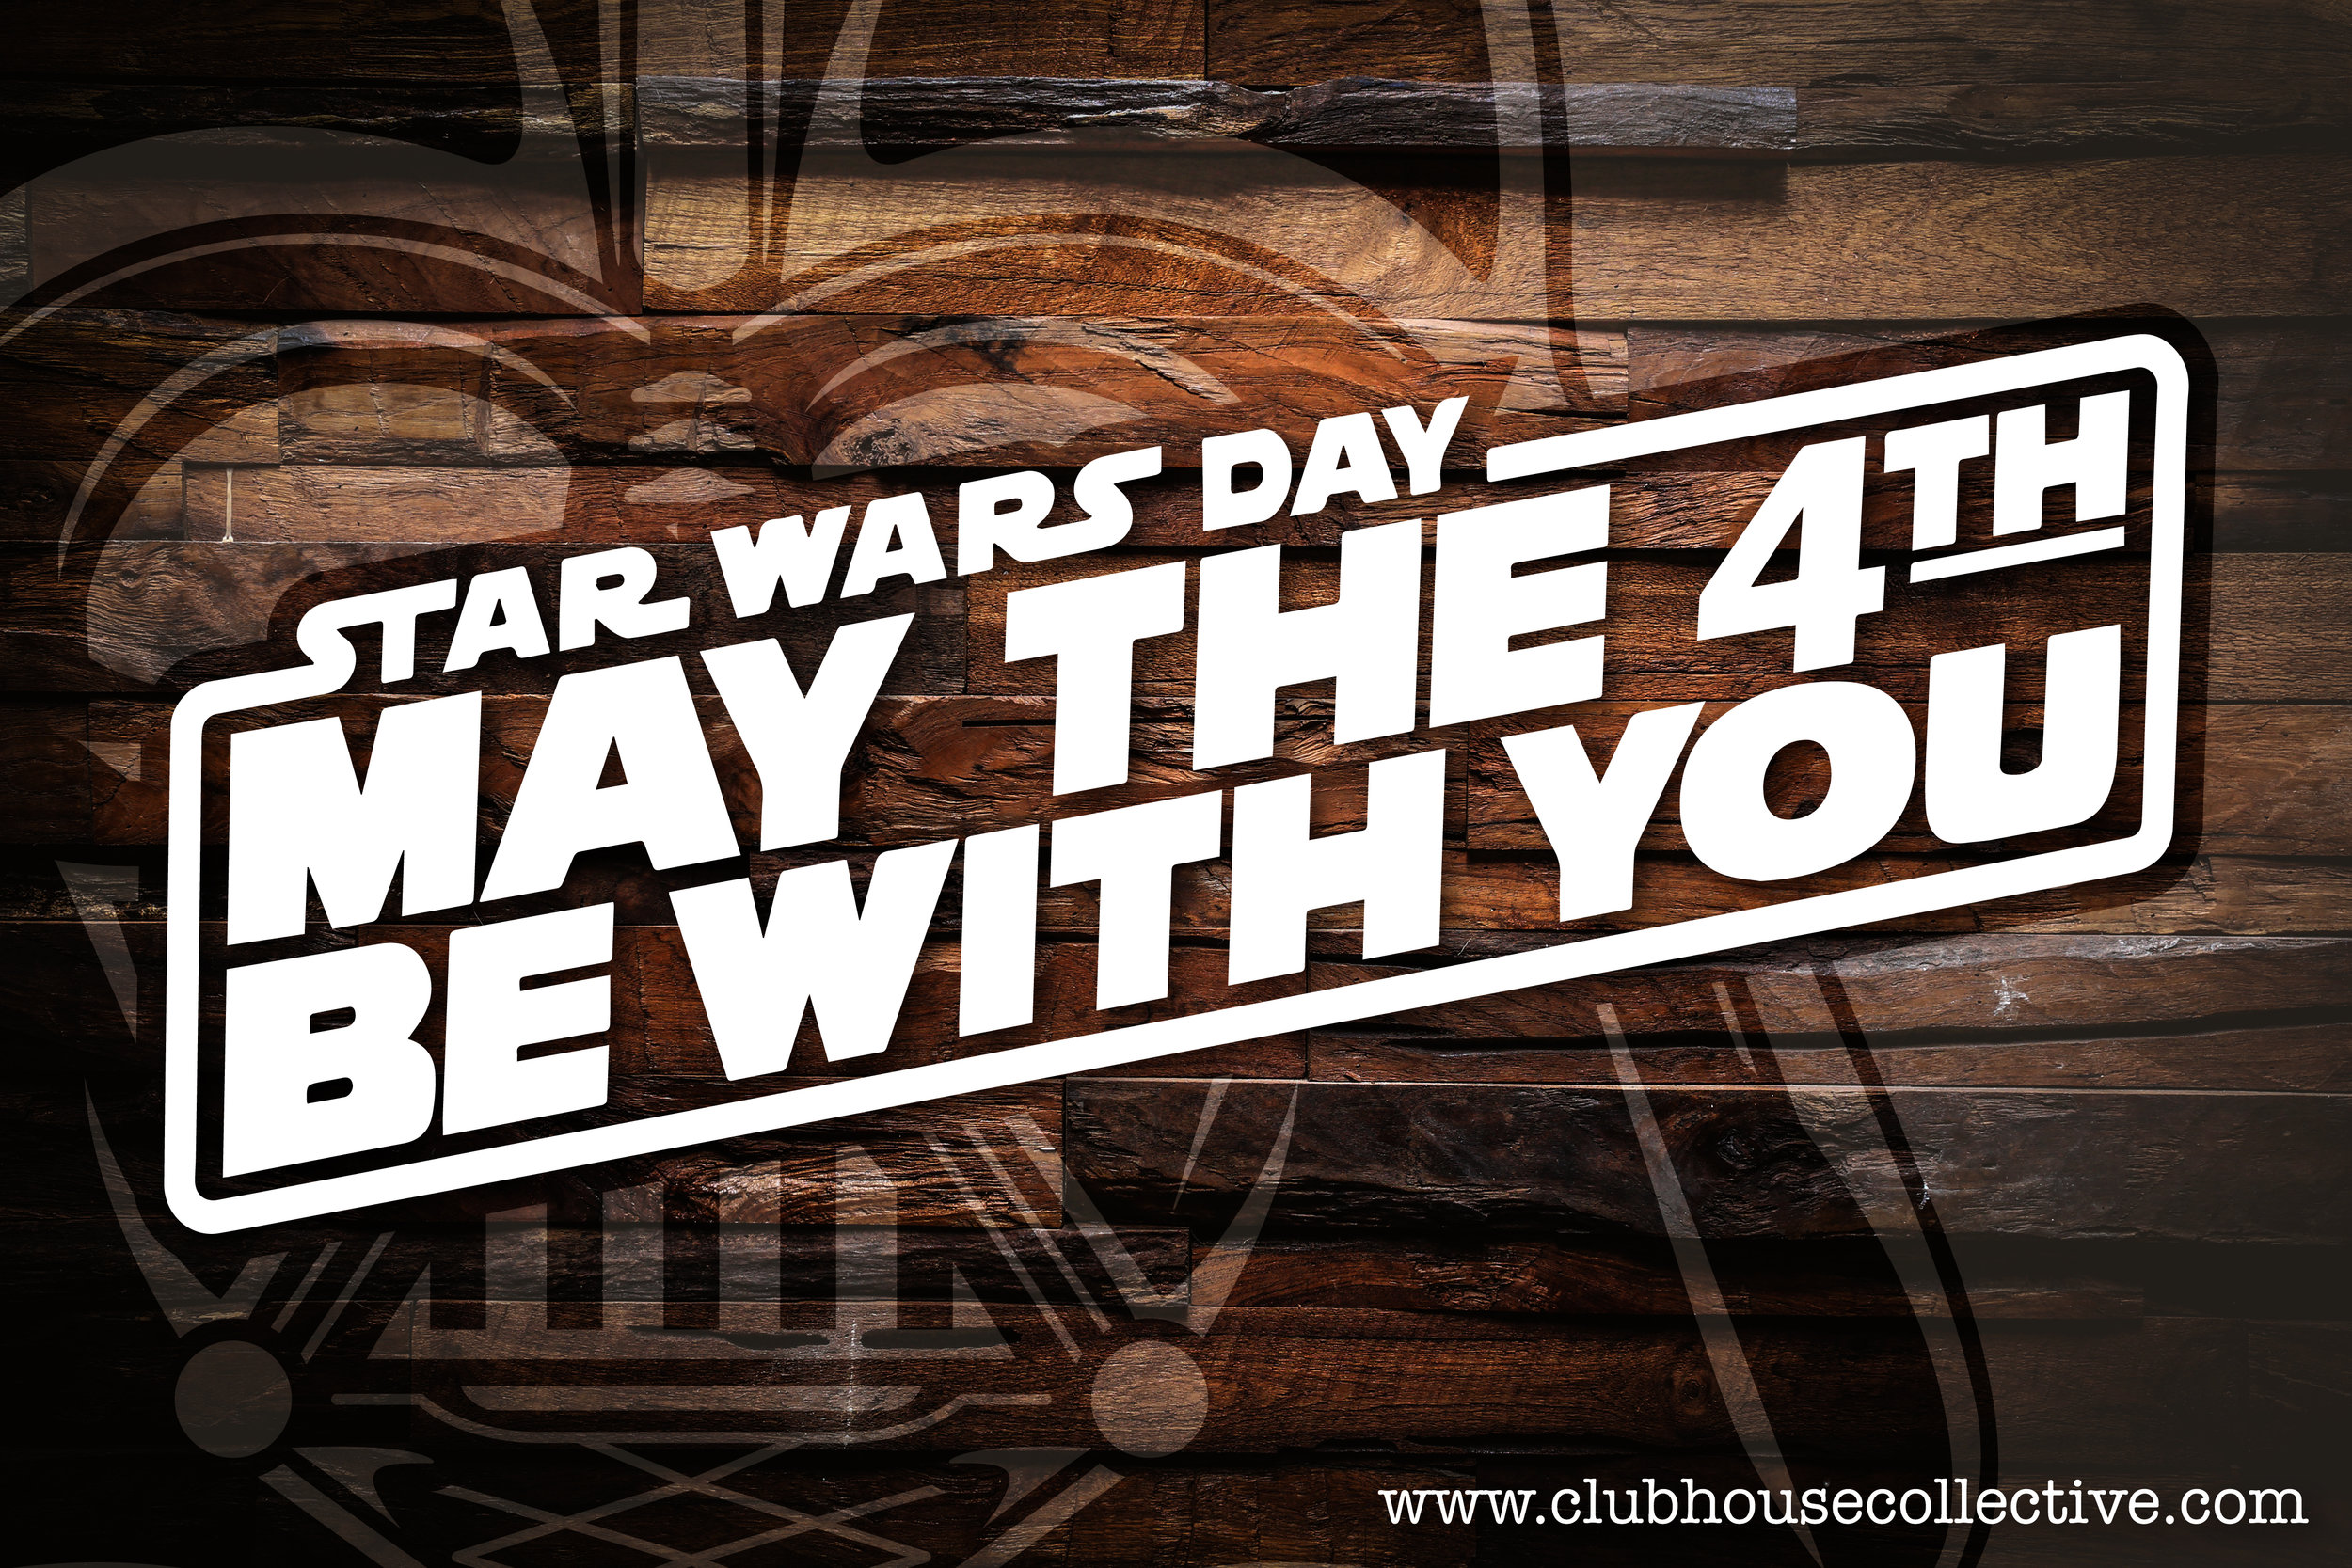 International Star Wars Day. ~ Corinne Jade, ClubHouse Collective